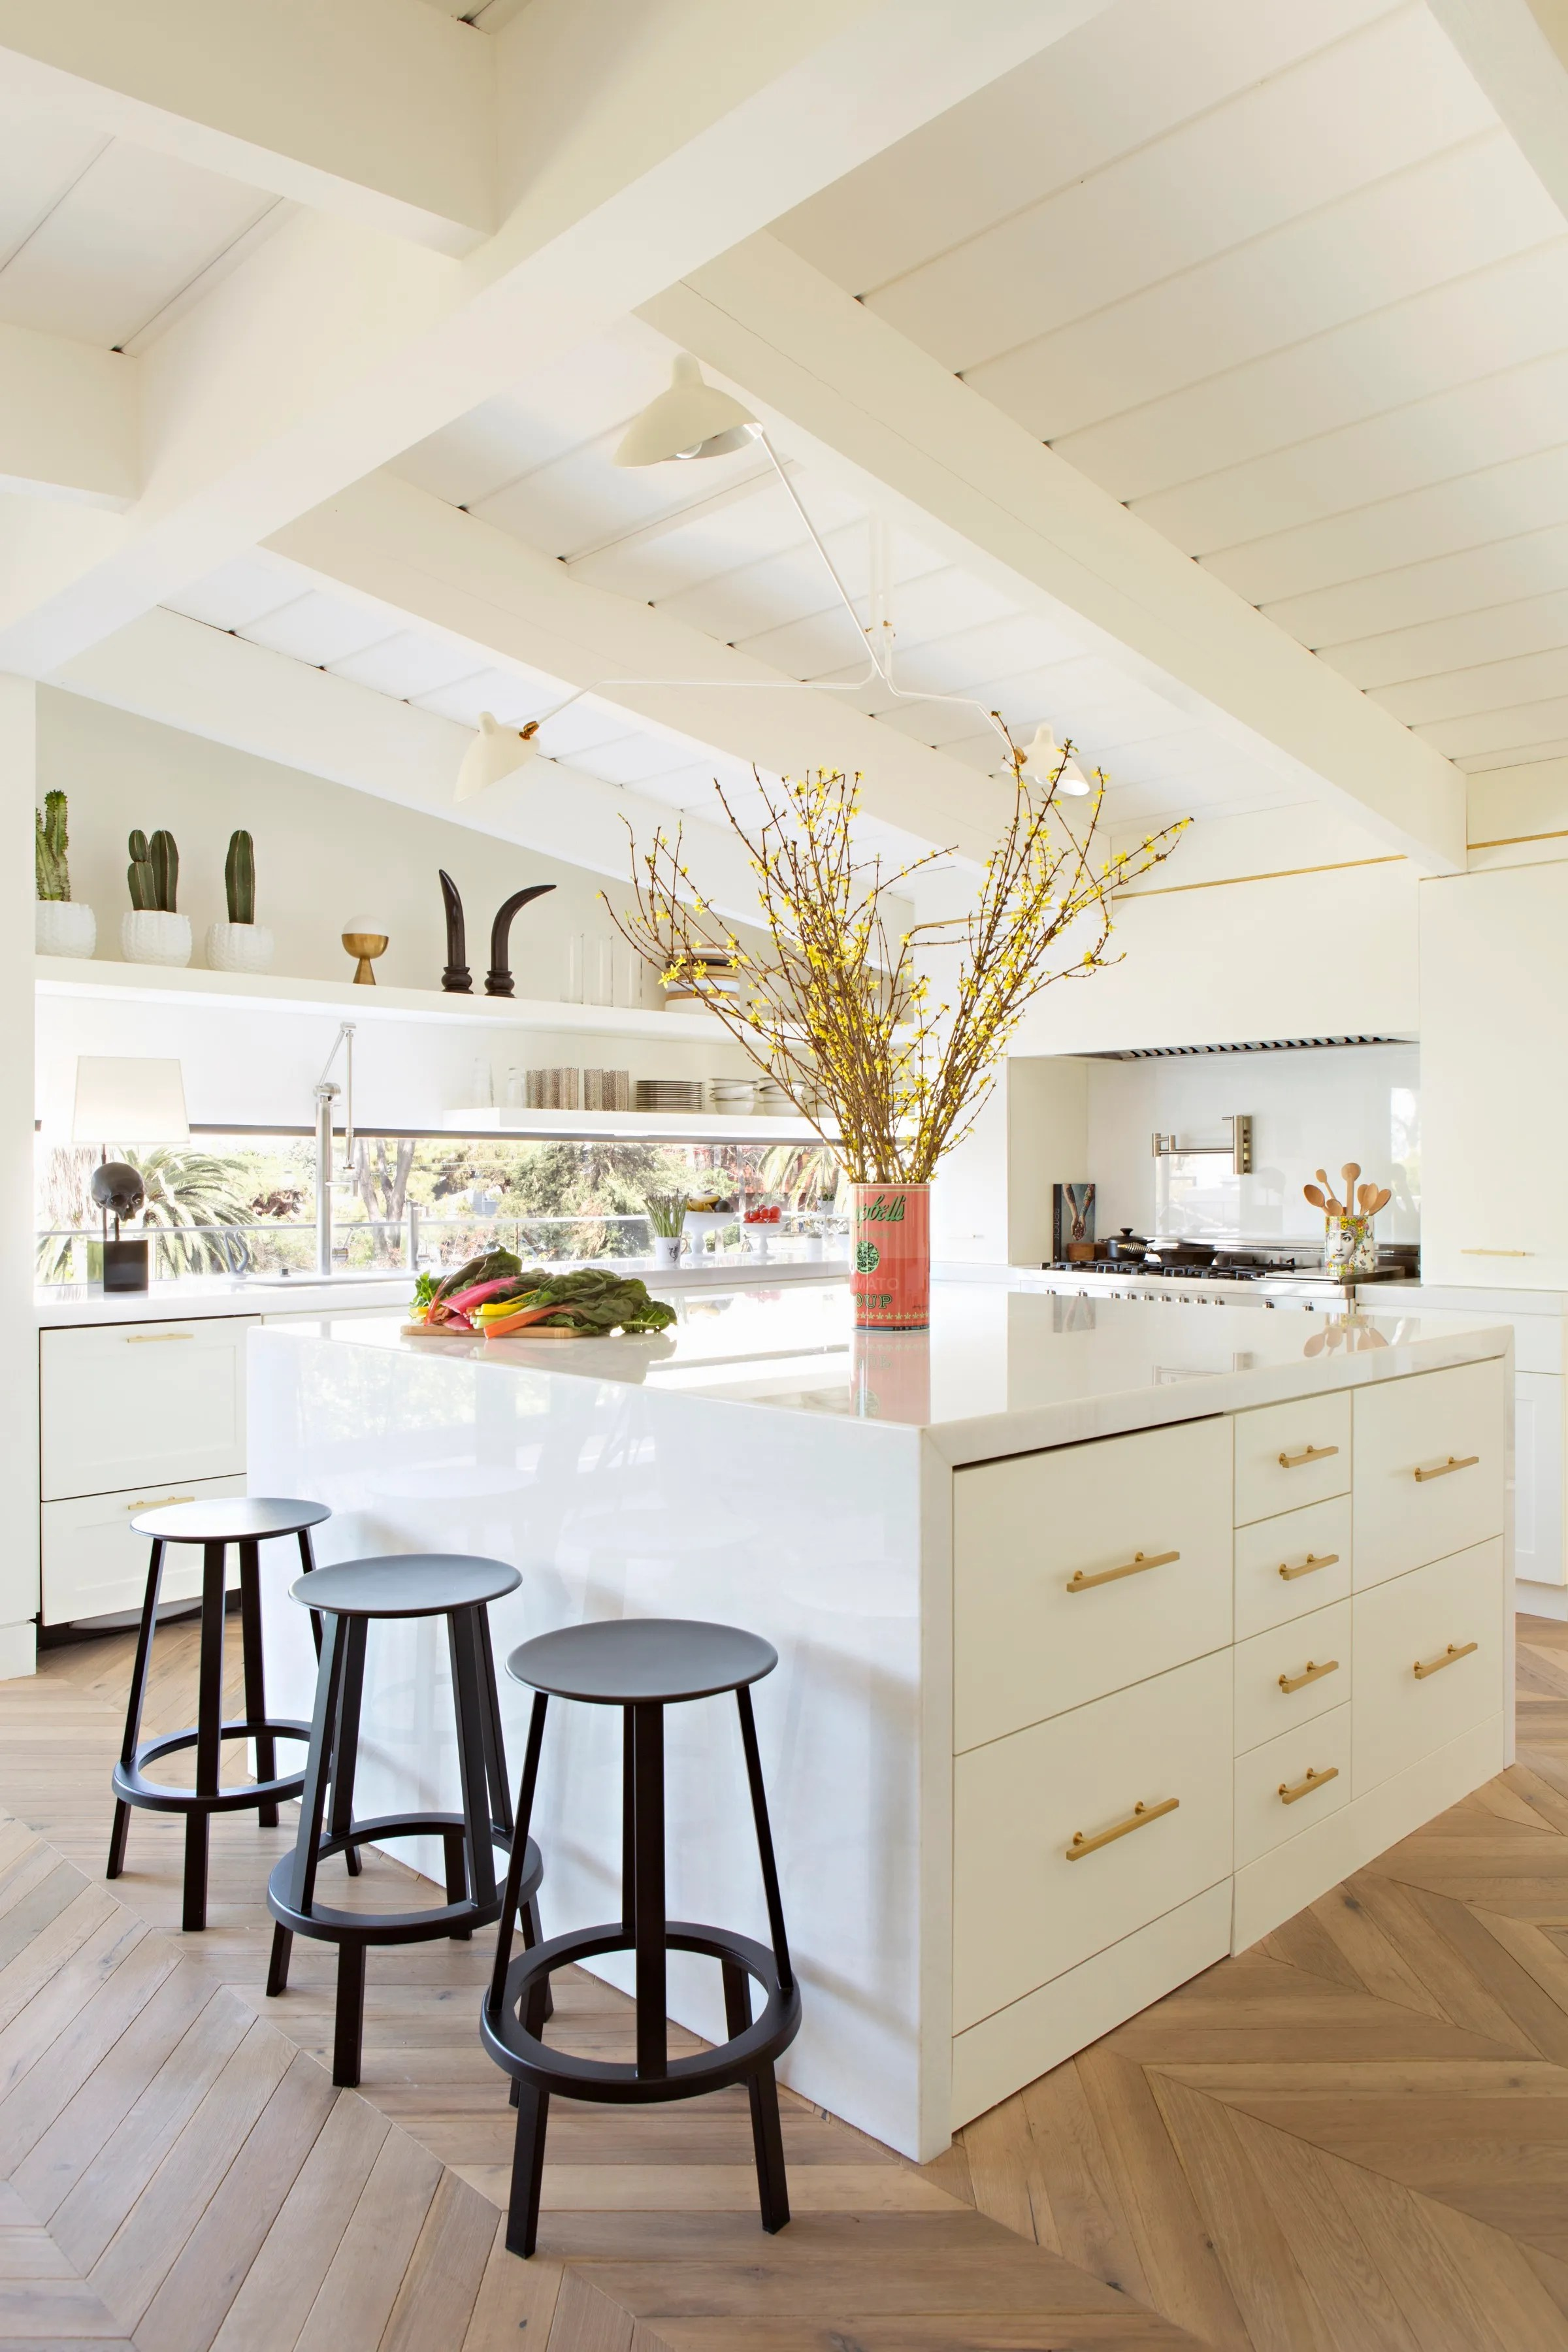 A Dark 1960s Kitchen Is Transformed into an Airy Oasis ... on Rustic:rkh3E0Gkuju= Farmhouse Kitchen Ideas  id=64407